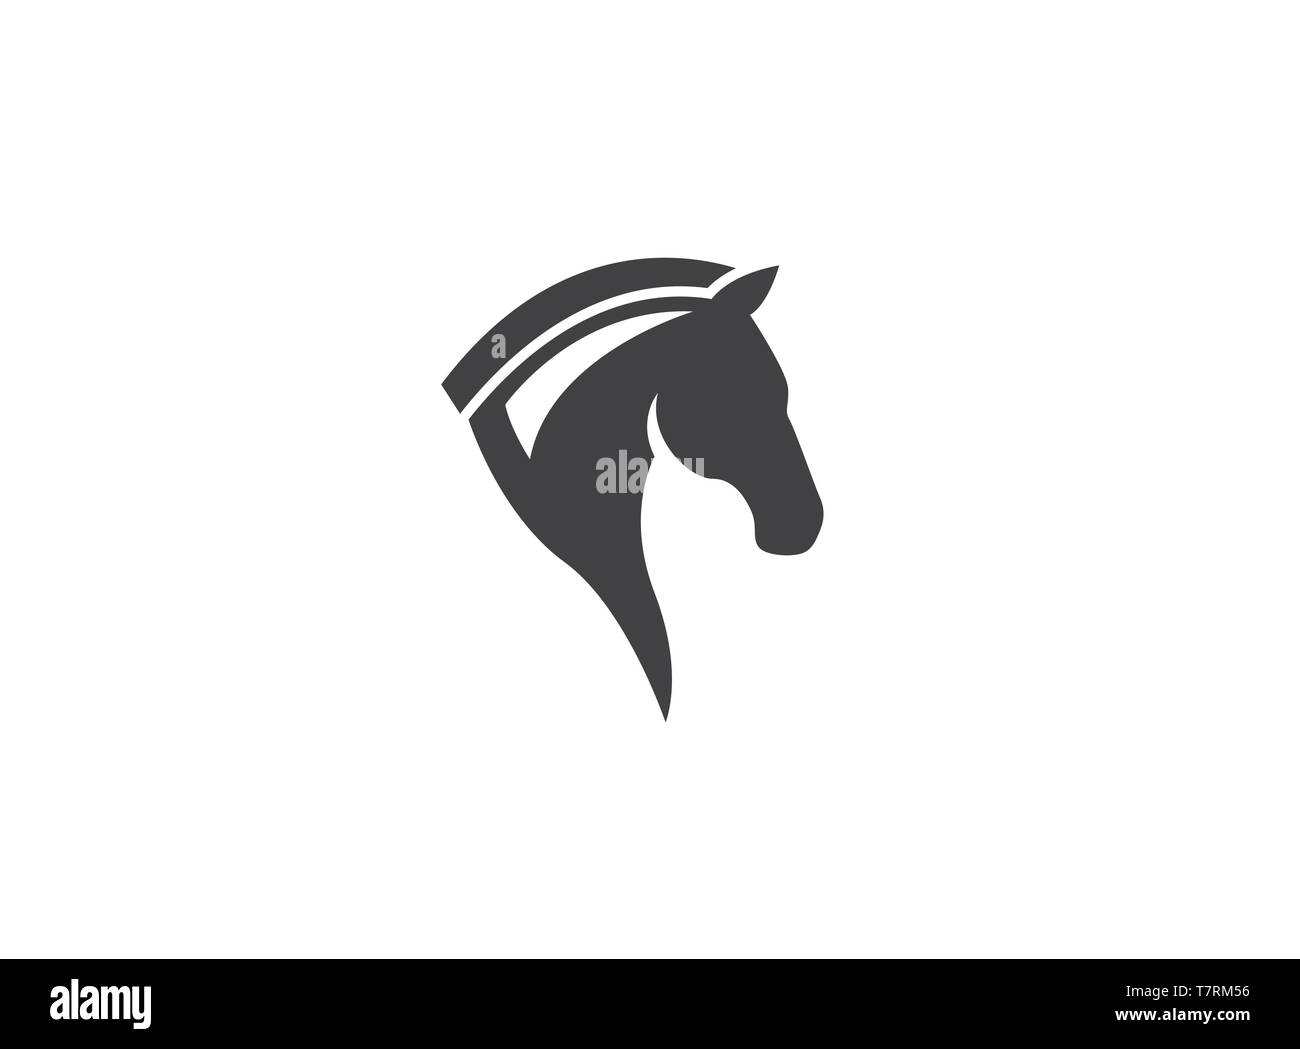 Horse head chess symbol for logo design - Stock Image